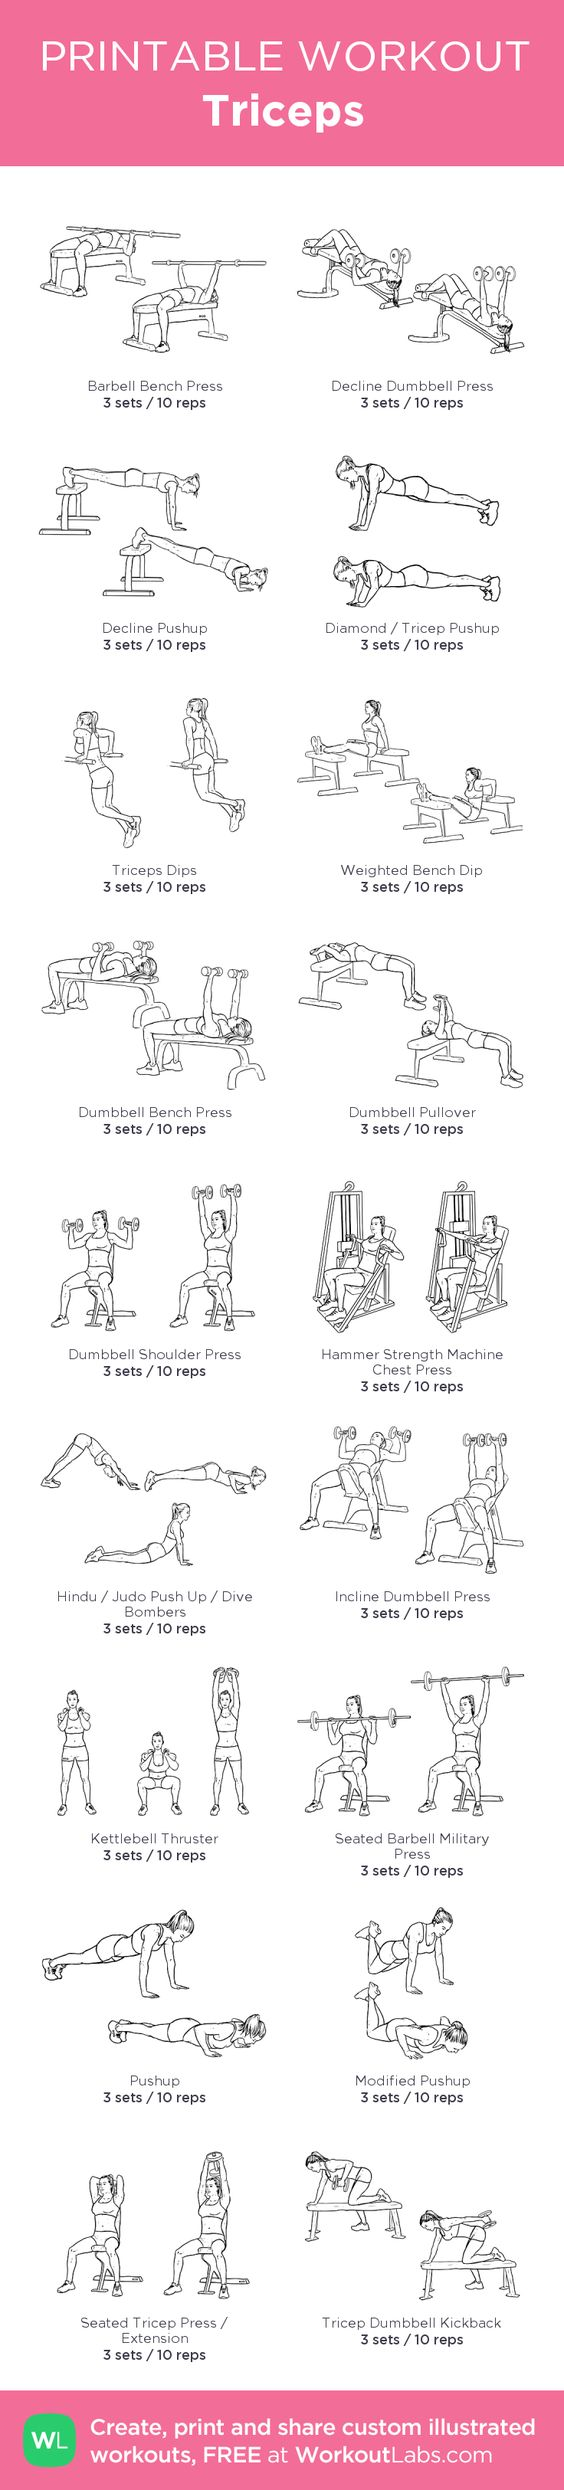 Triceps:my custom printable workout by @WorkoutLabs #workoutlabs #customworkout